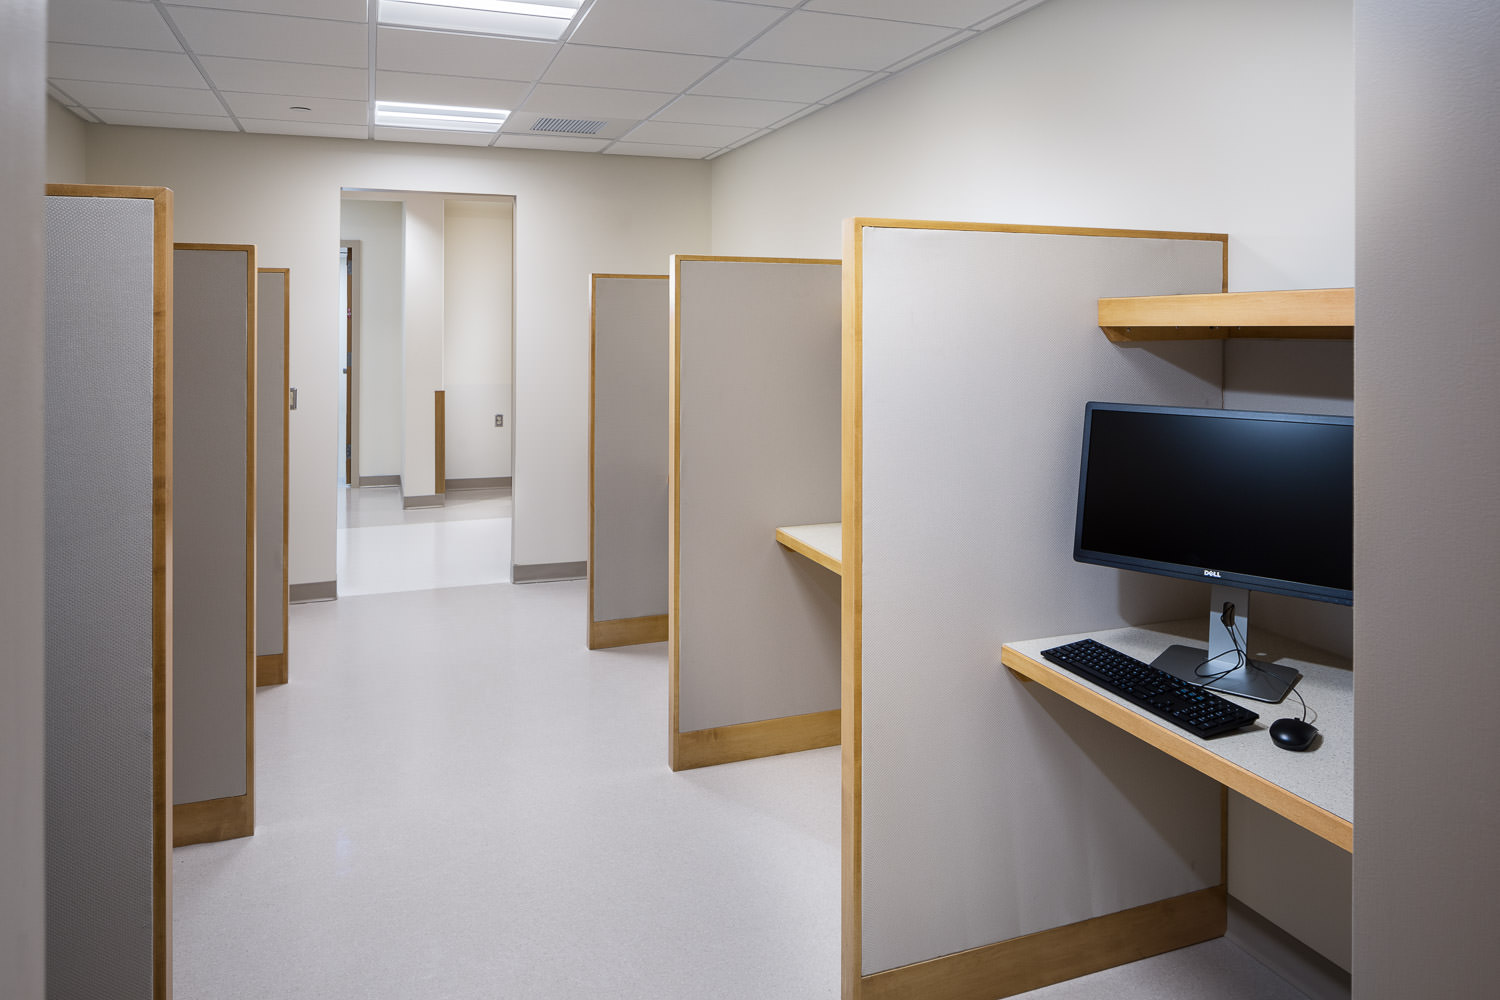 Staff work area in Northwestern Medical Center's Inpatient Progressive Care Unit in St. Albans Vermont constructed in 2017 photographed by Stina Booth of Studio SB.